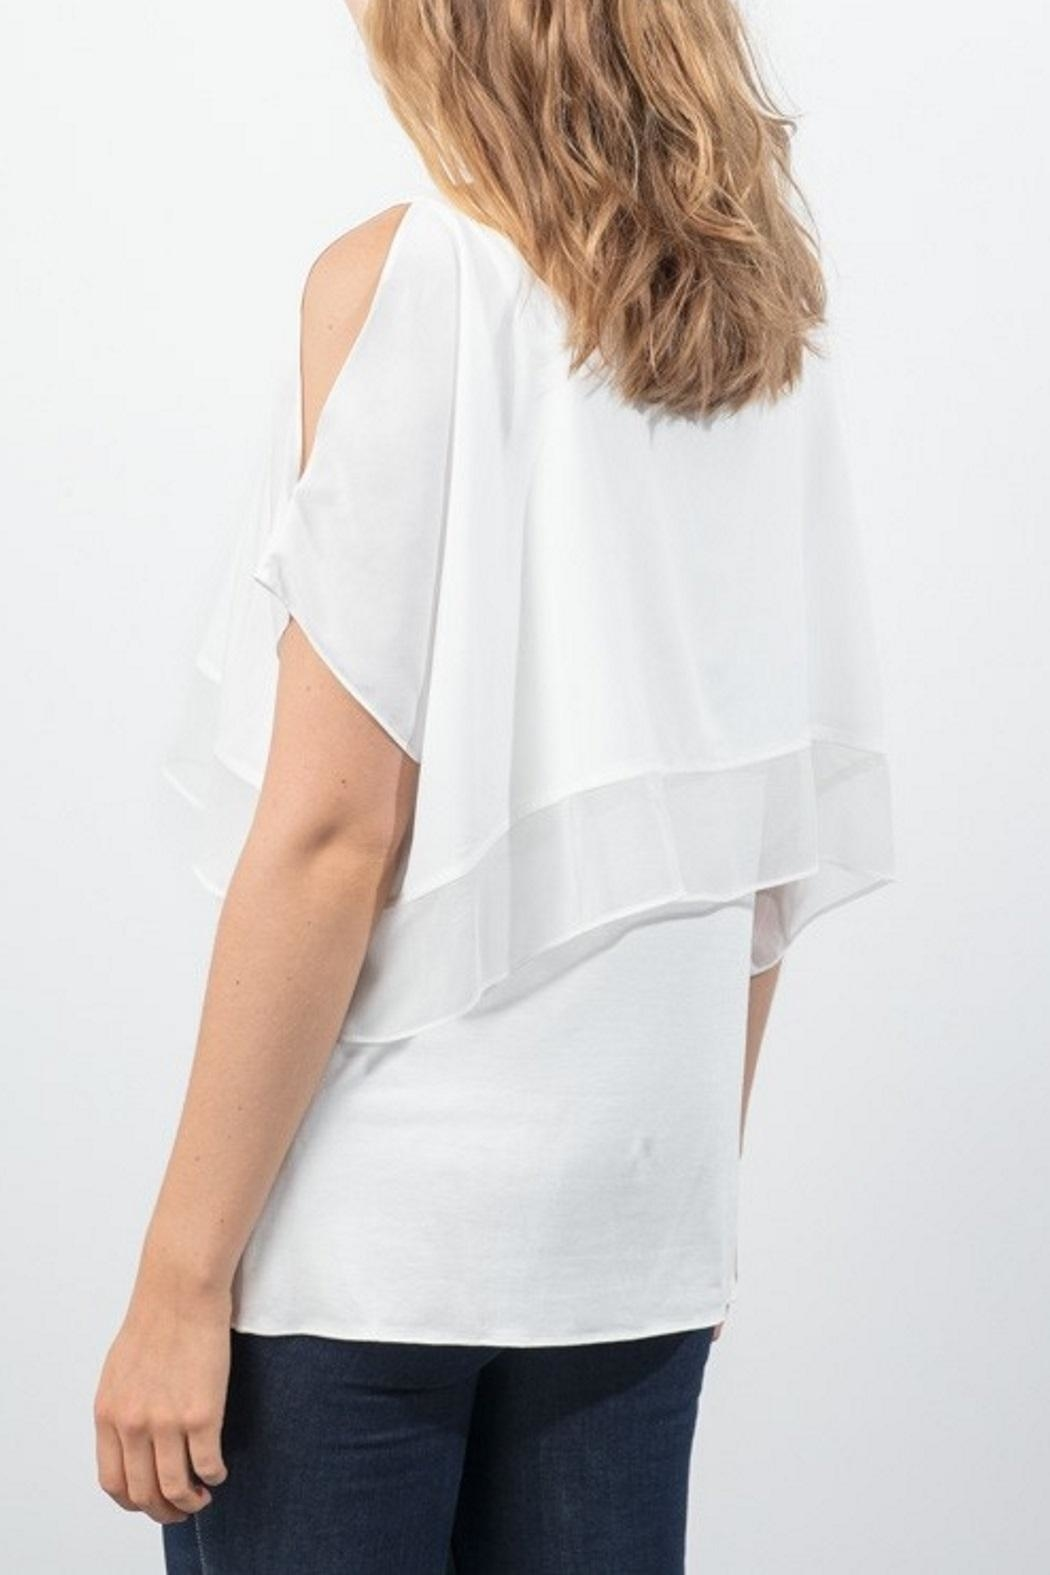 Lola & Sophie Chiffon Capelet Top - Front Full Image